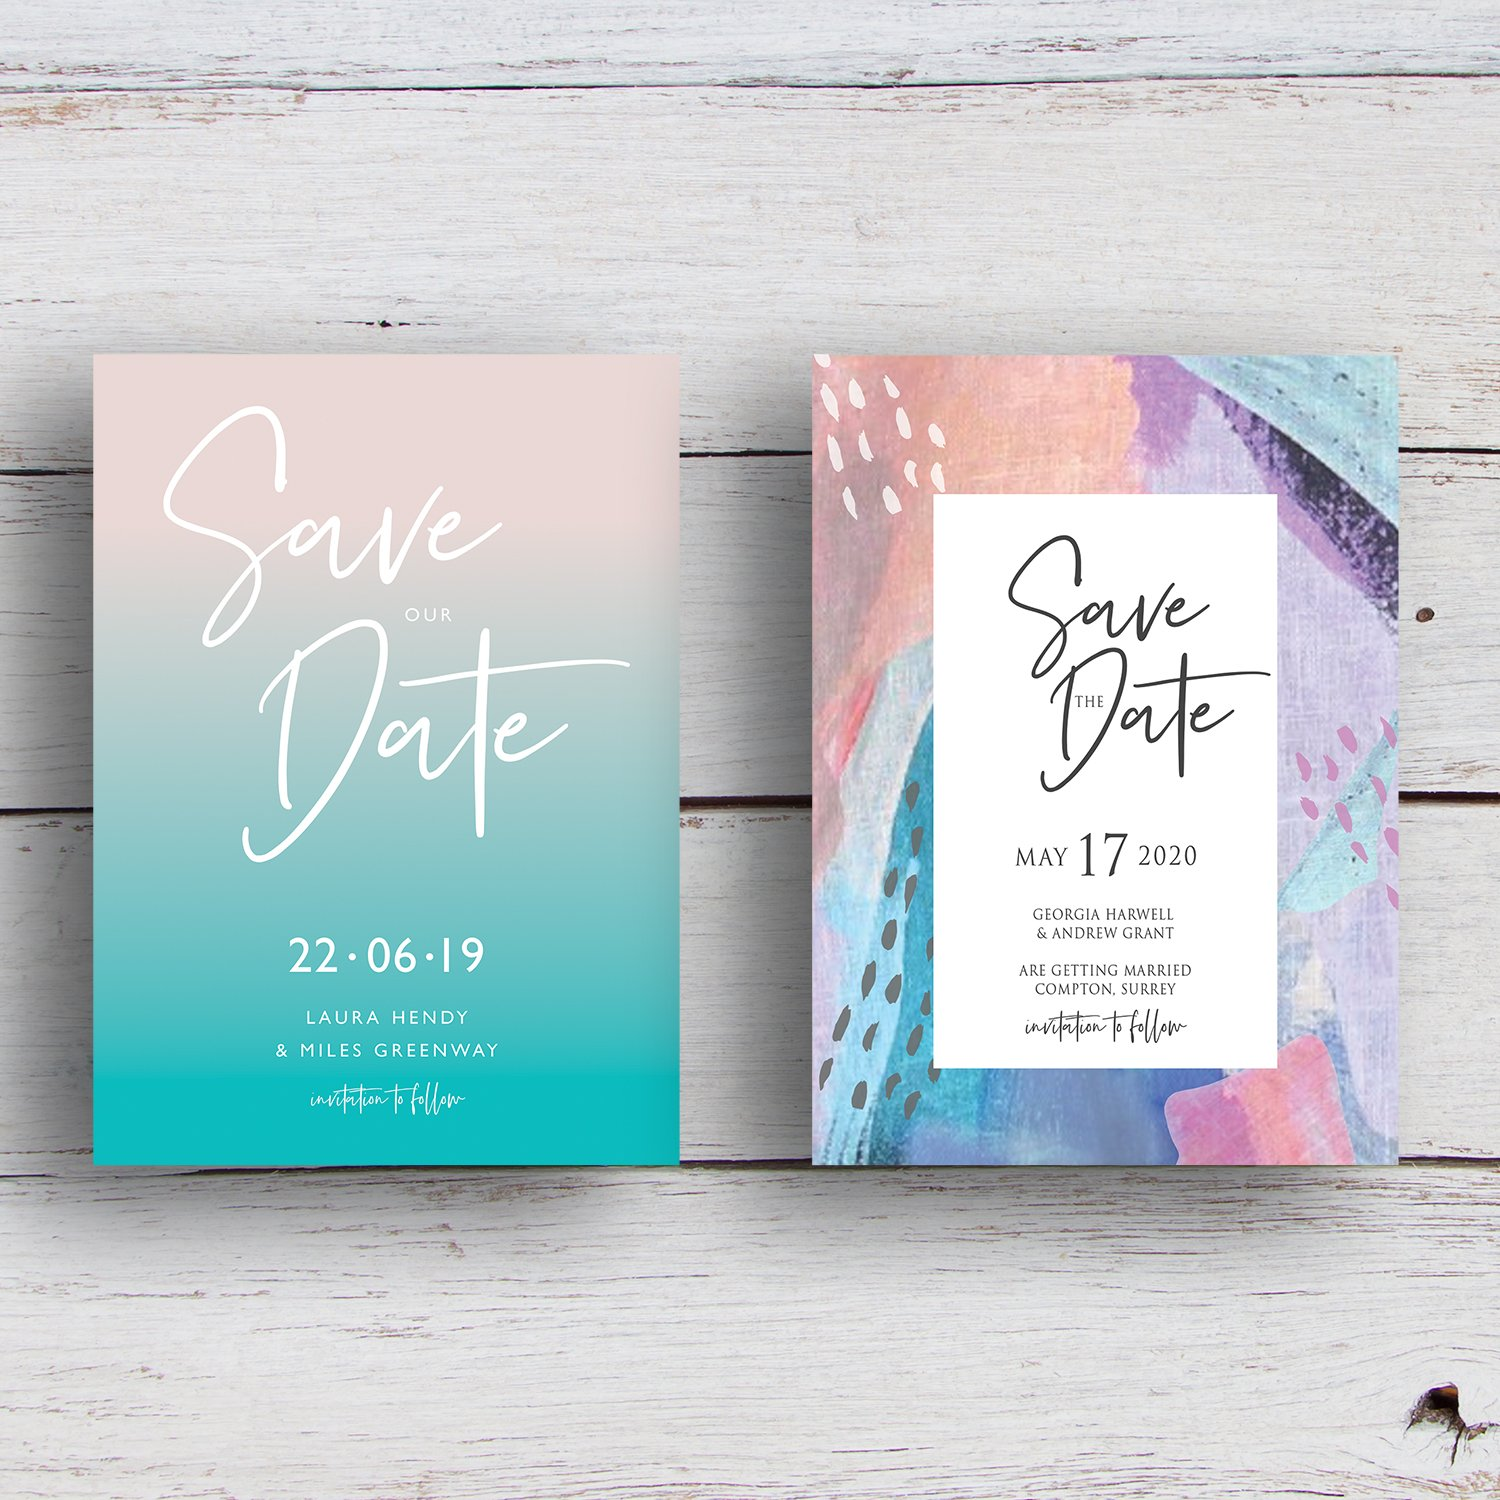 Wedding Save the Date Cards, Save the Dates | wedding stationery Surrey, Flamboyant Invites